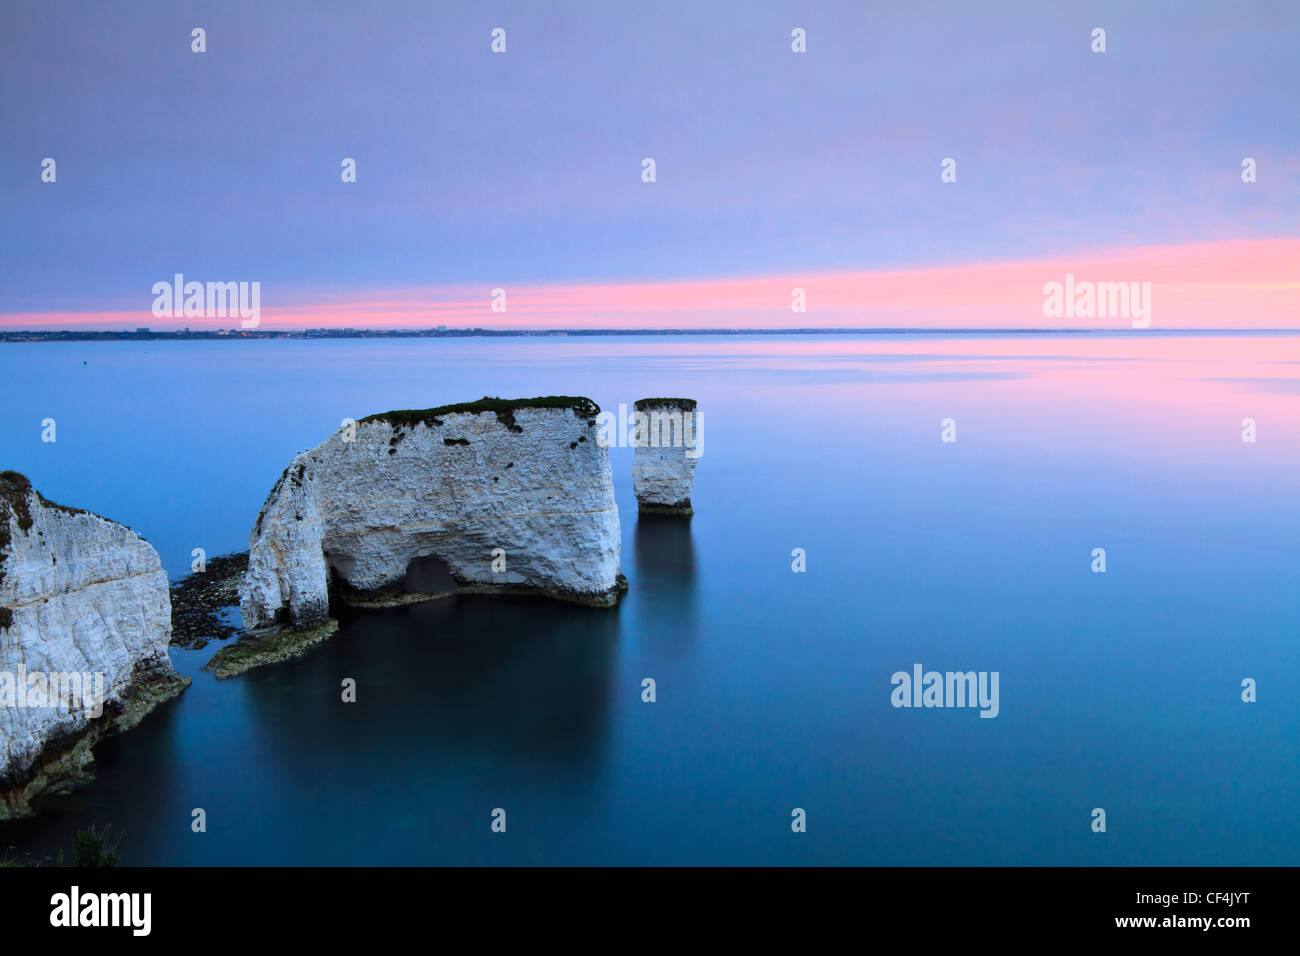 Old Harry Rocks, two chalk sea stacks located at Handfast Point, on the Isle of Purbeck at sunrise. - Stock Image